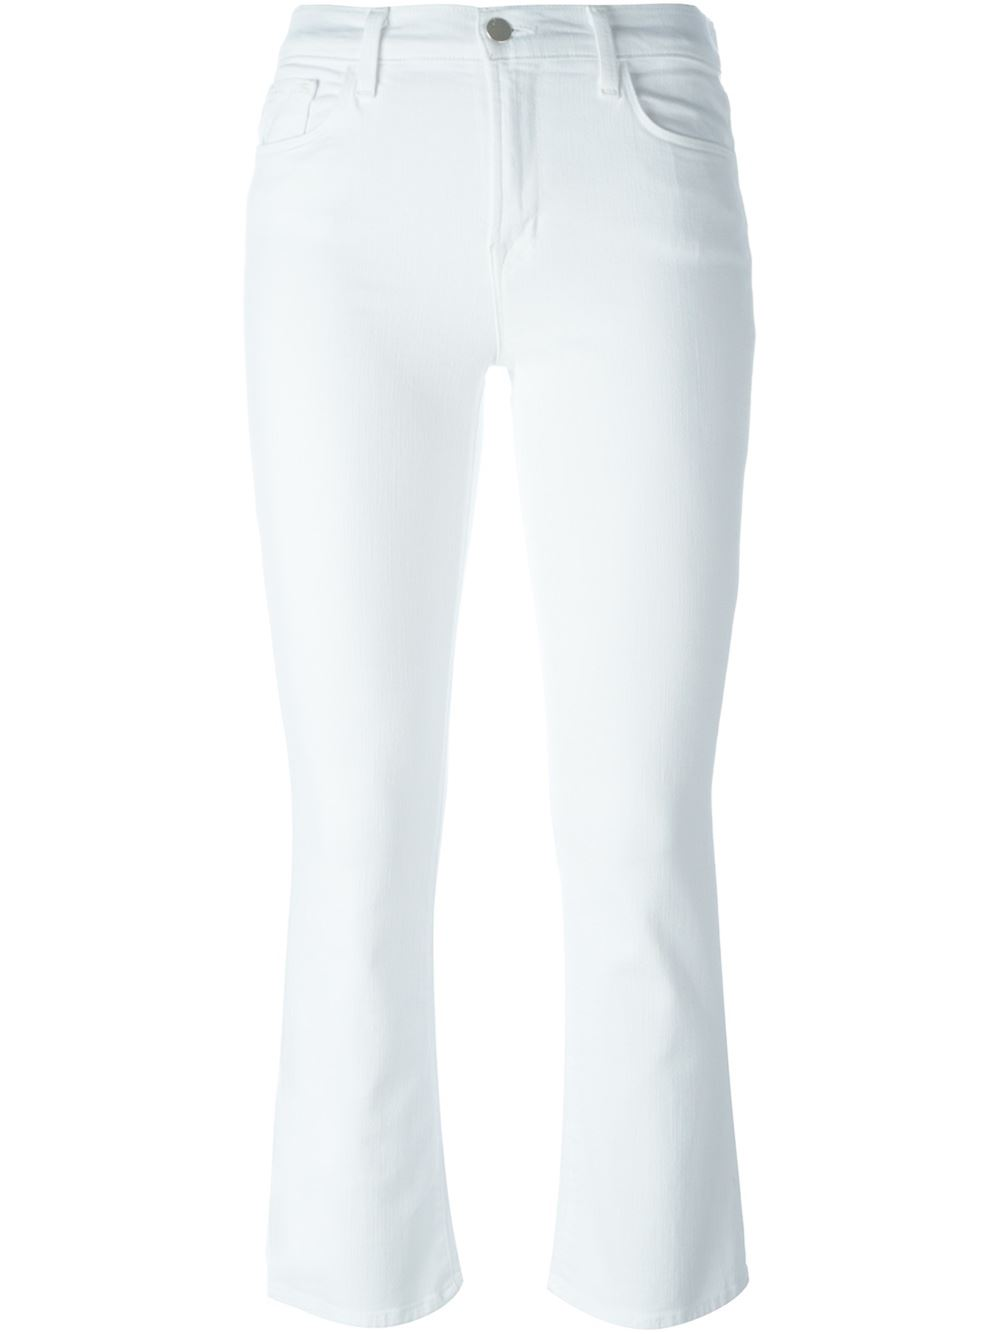 7 For All Mankind SELENA MID RISE CROP BOOTCUT